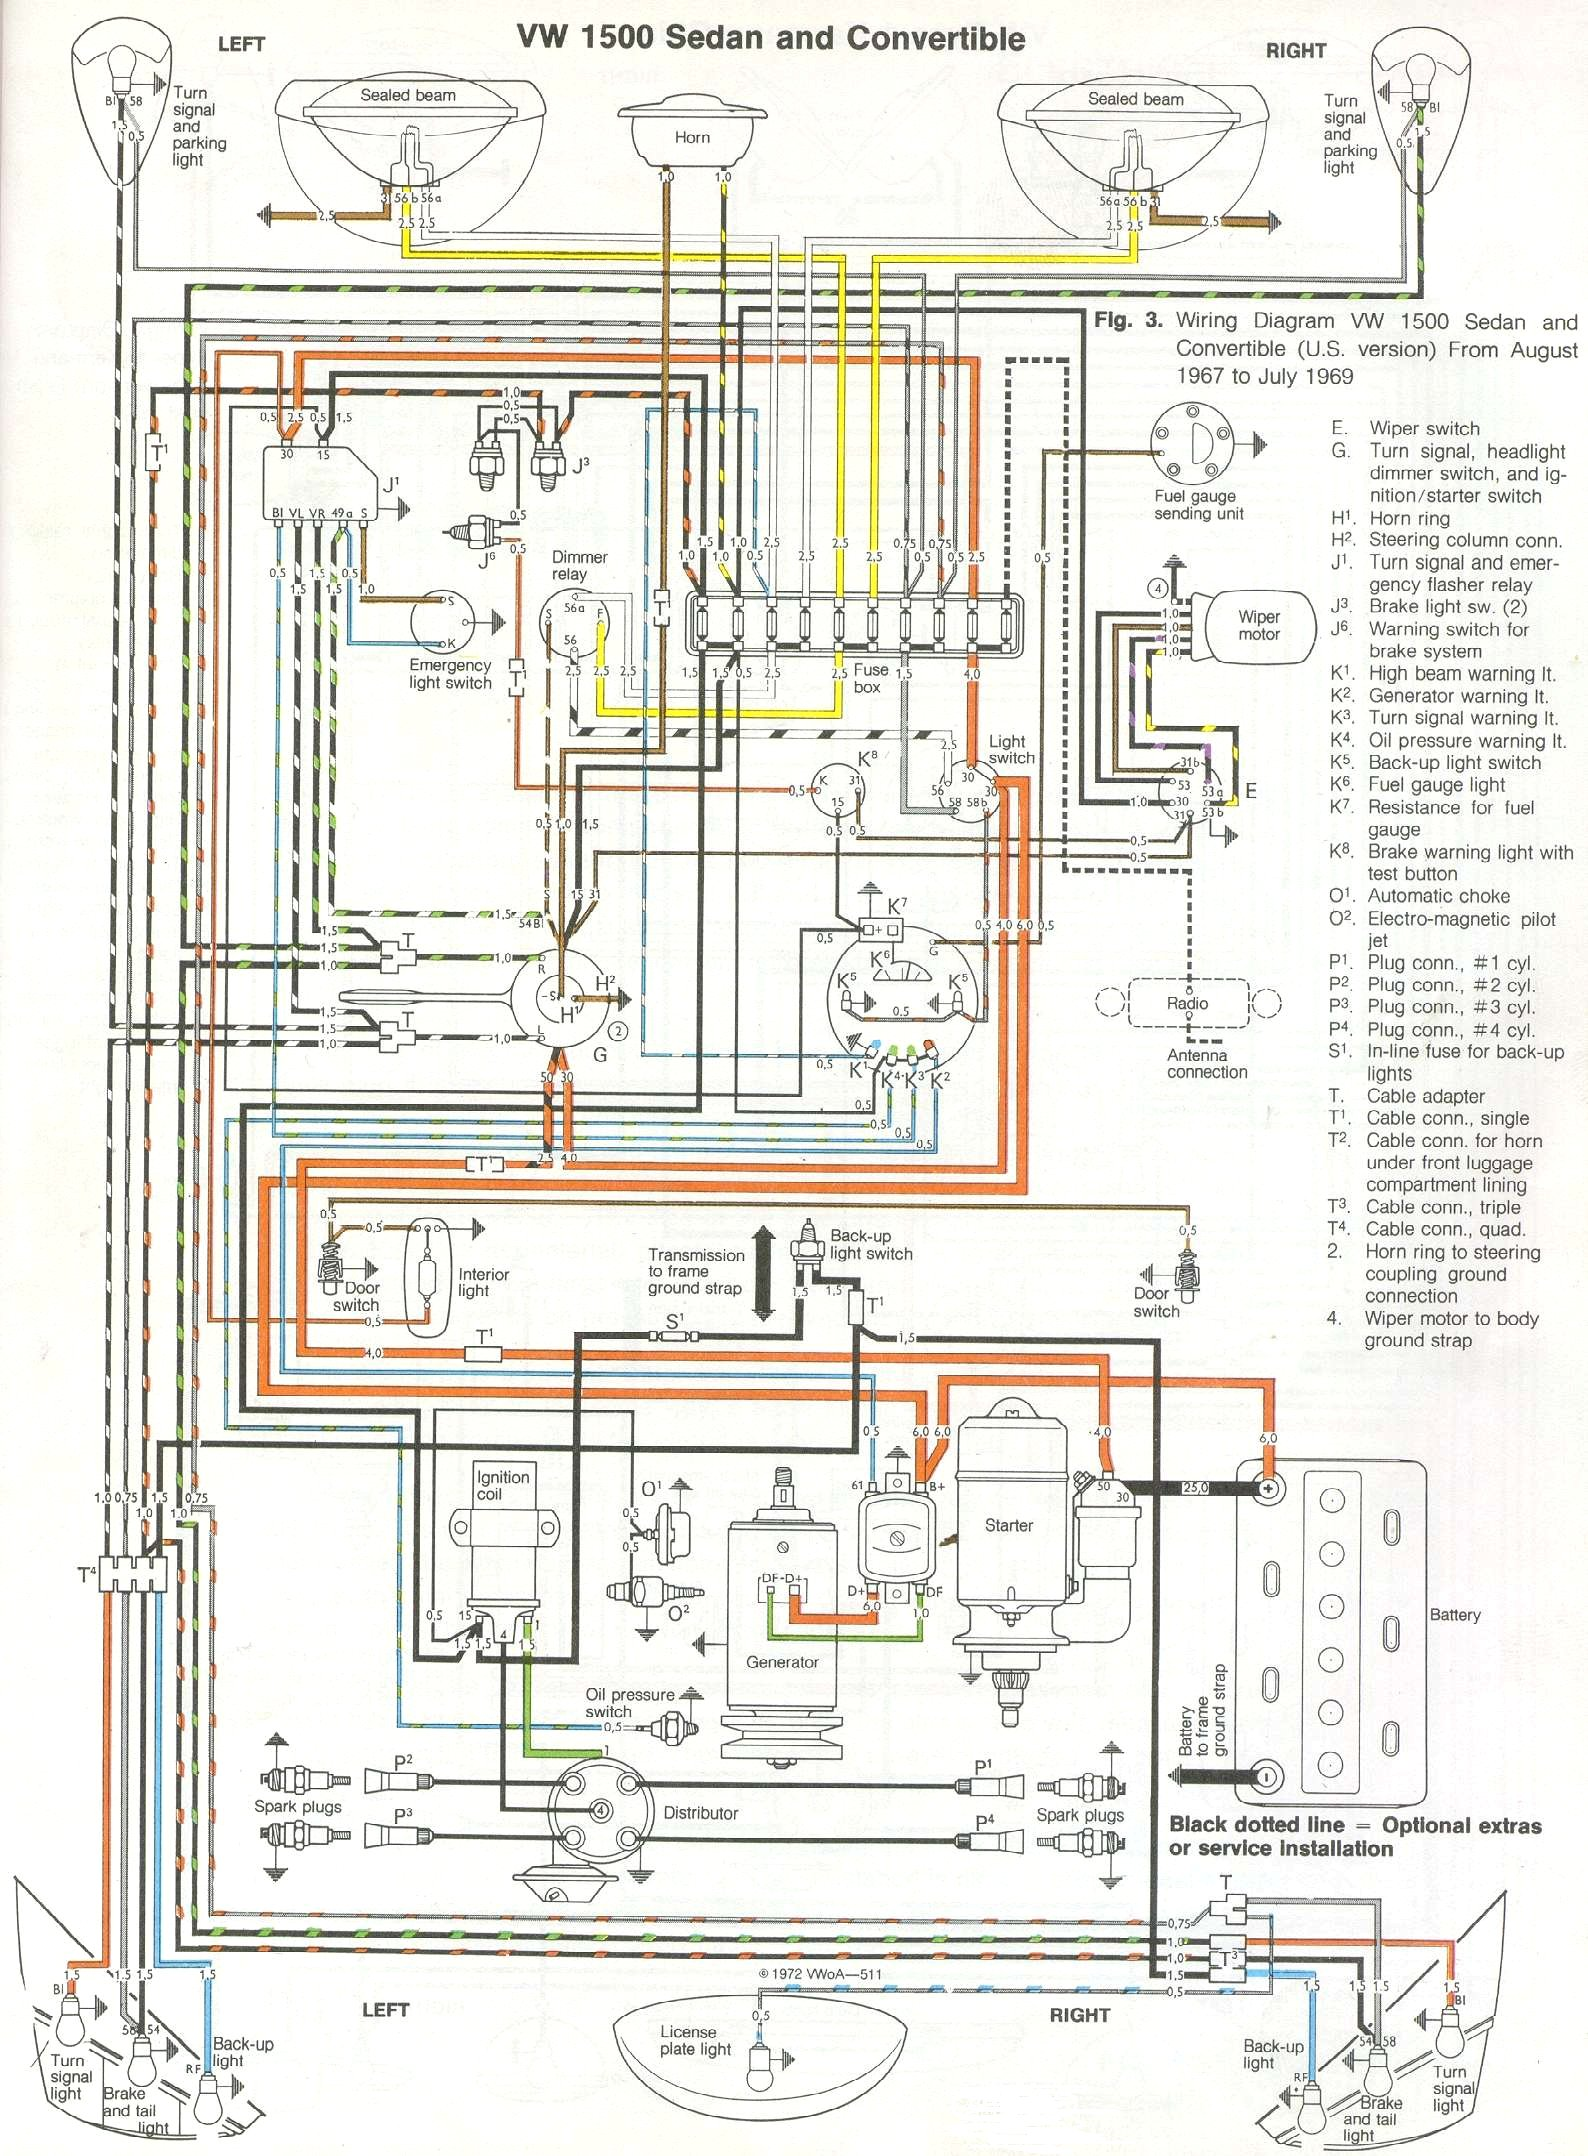 1972 vw wiring diagram electrical diagram schematics rh zavoral genealogy com wiring diagram for 1972 super beetle